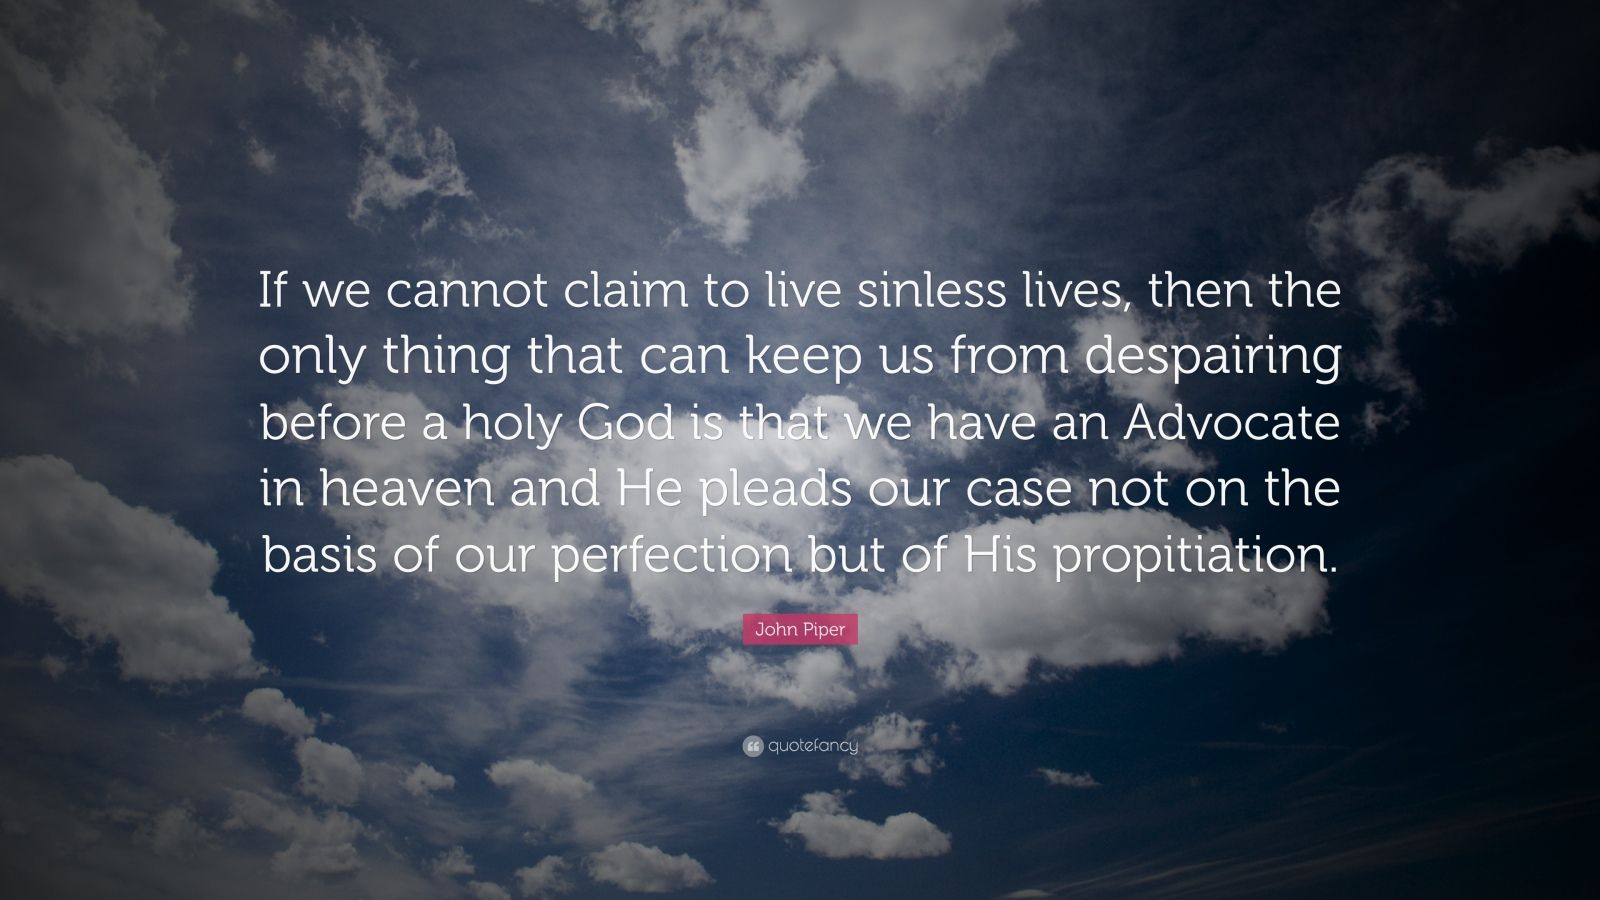 "John Piper Quote: ""If we cannot claim to live sinless lives, then the only thing that can keep us from despairing before a holy God is that we have an Advocate in heaven and He pleads our case not on the basis of our perfection but of His propitiation."""